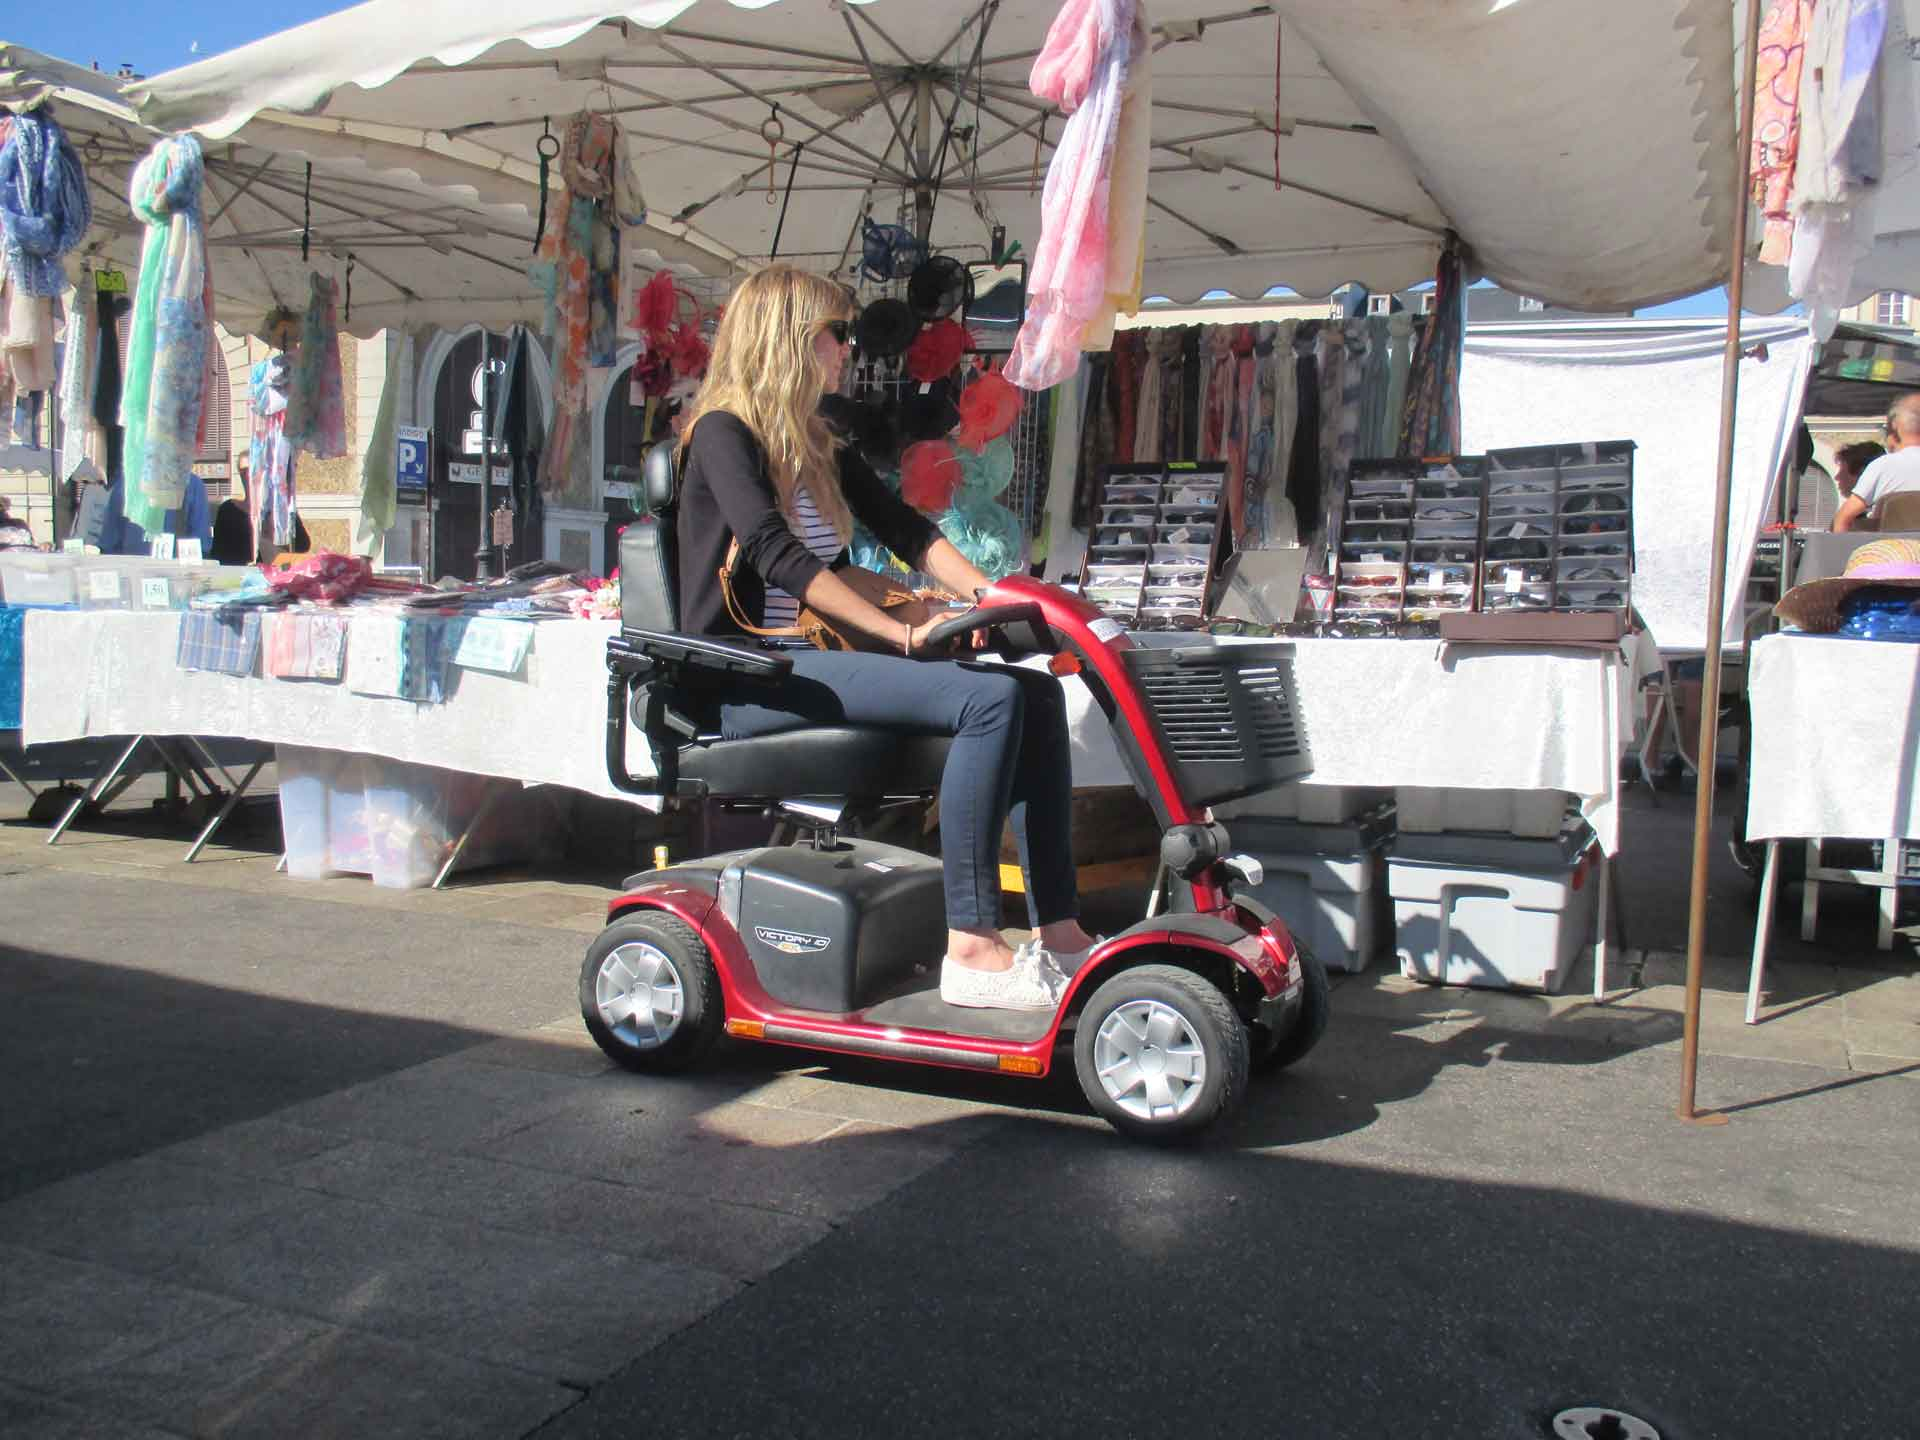 Electric scooter hire for the disabled, ideal for tourism and visiting